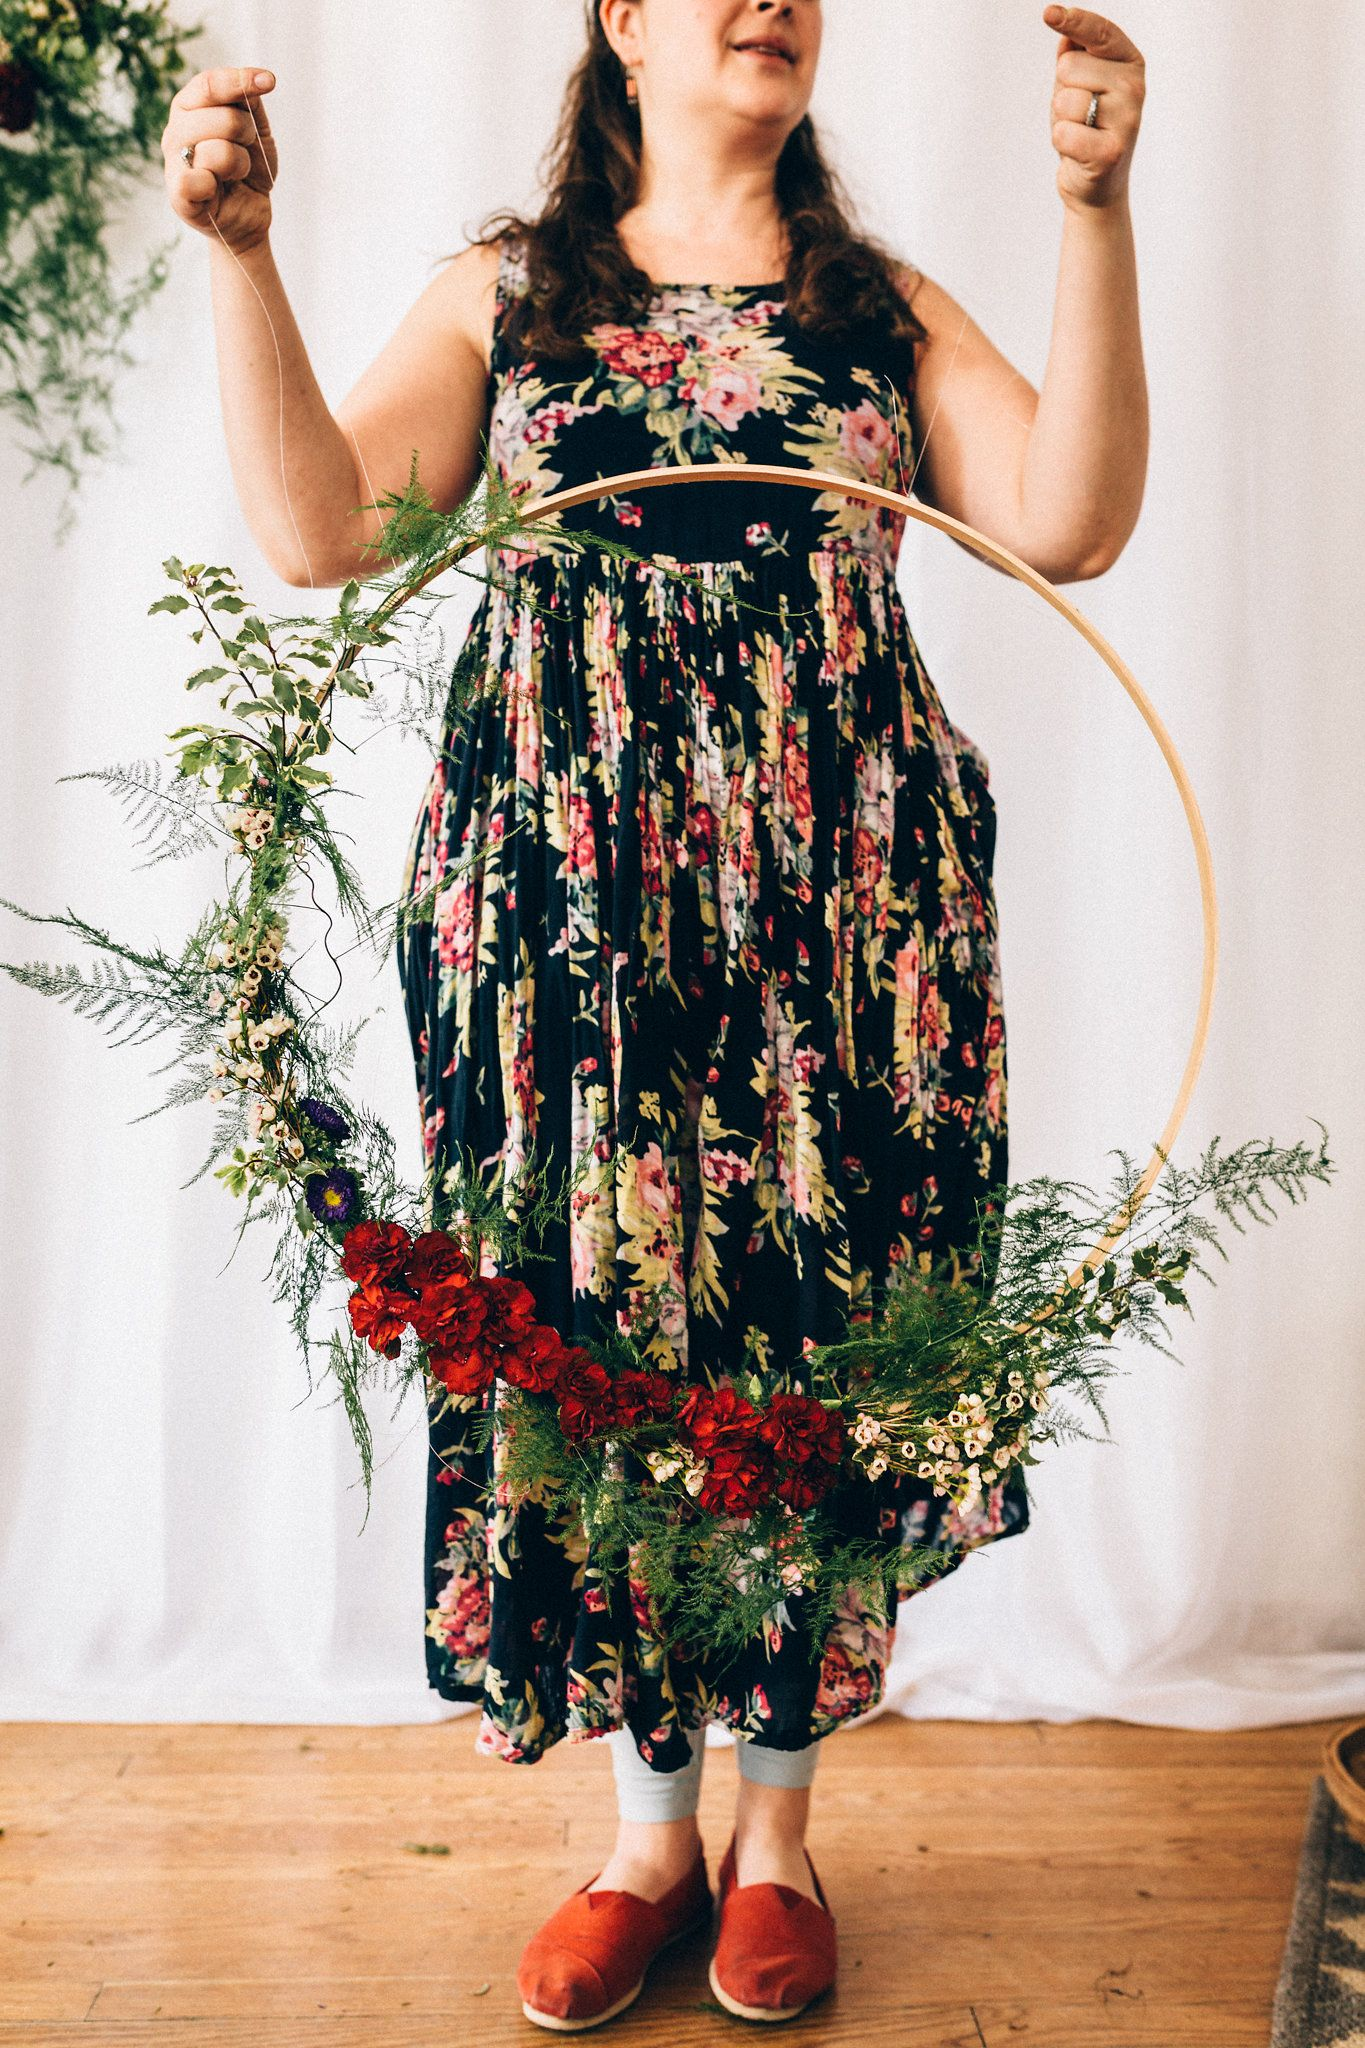 Hanging floral hoops - Blomma Designs spent an afternoon in the studio with Alaska Knit Nat learning how to make these whimsical hanging floral hoops.